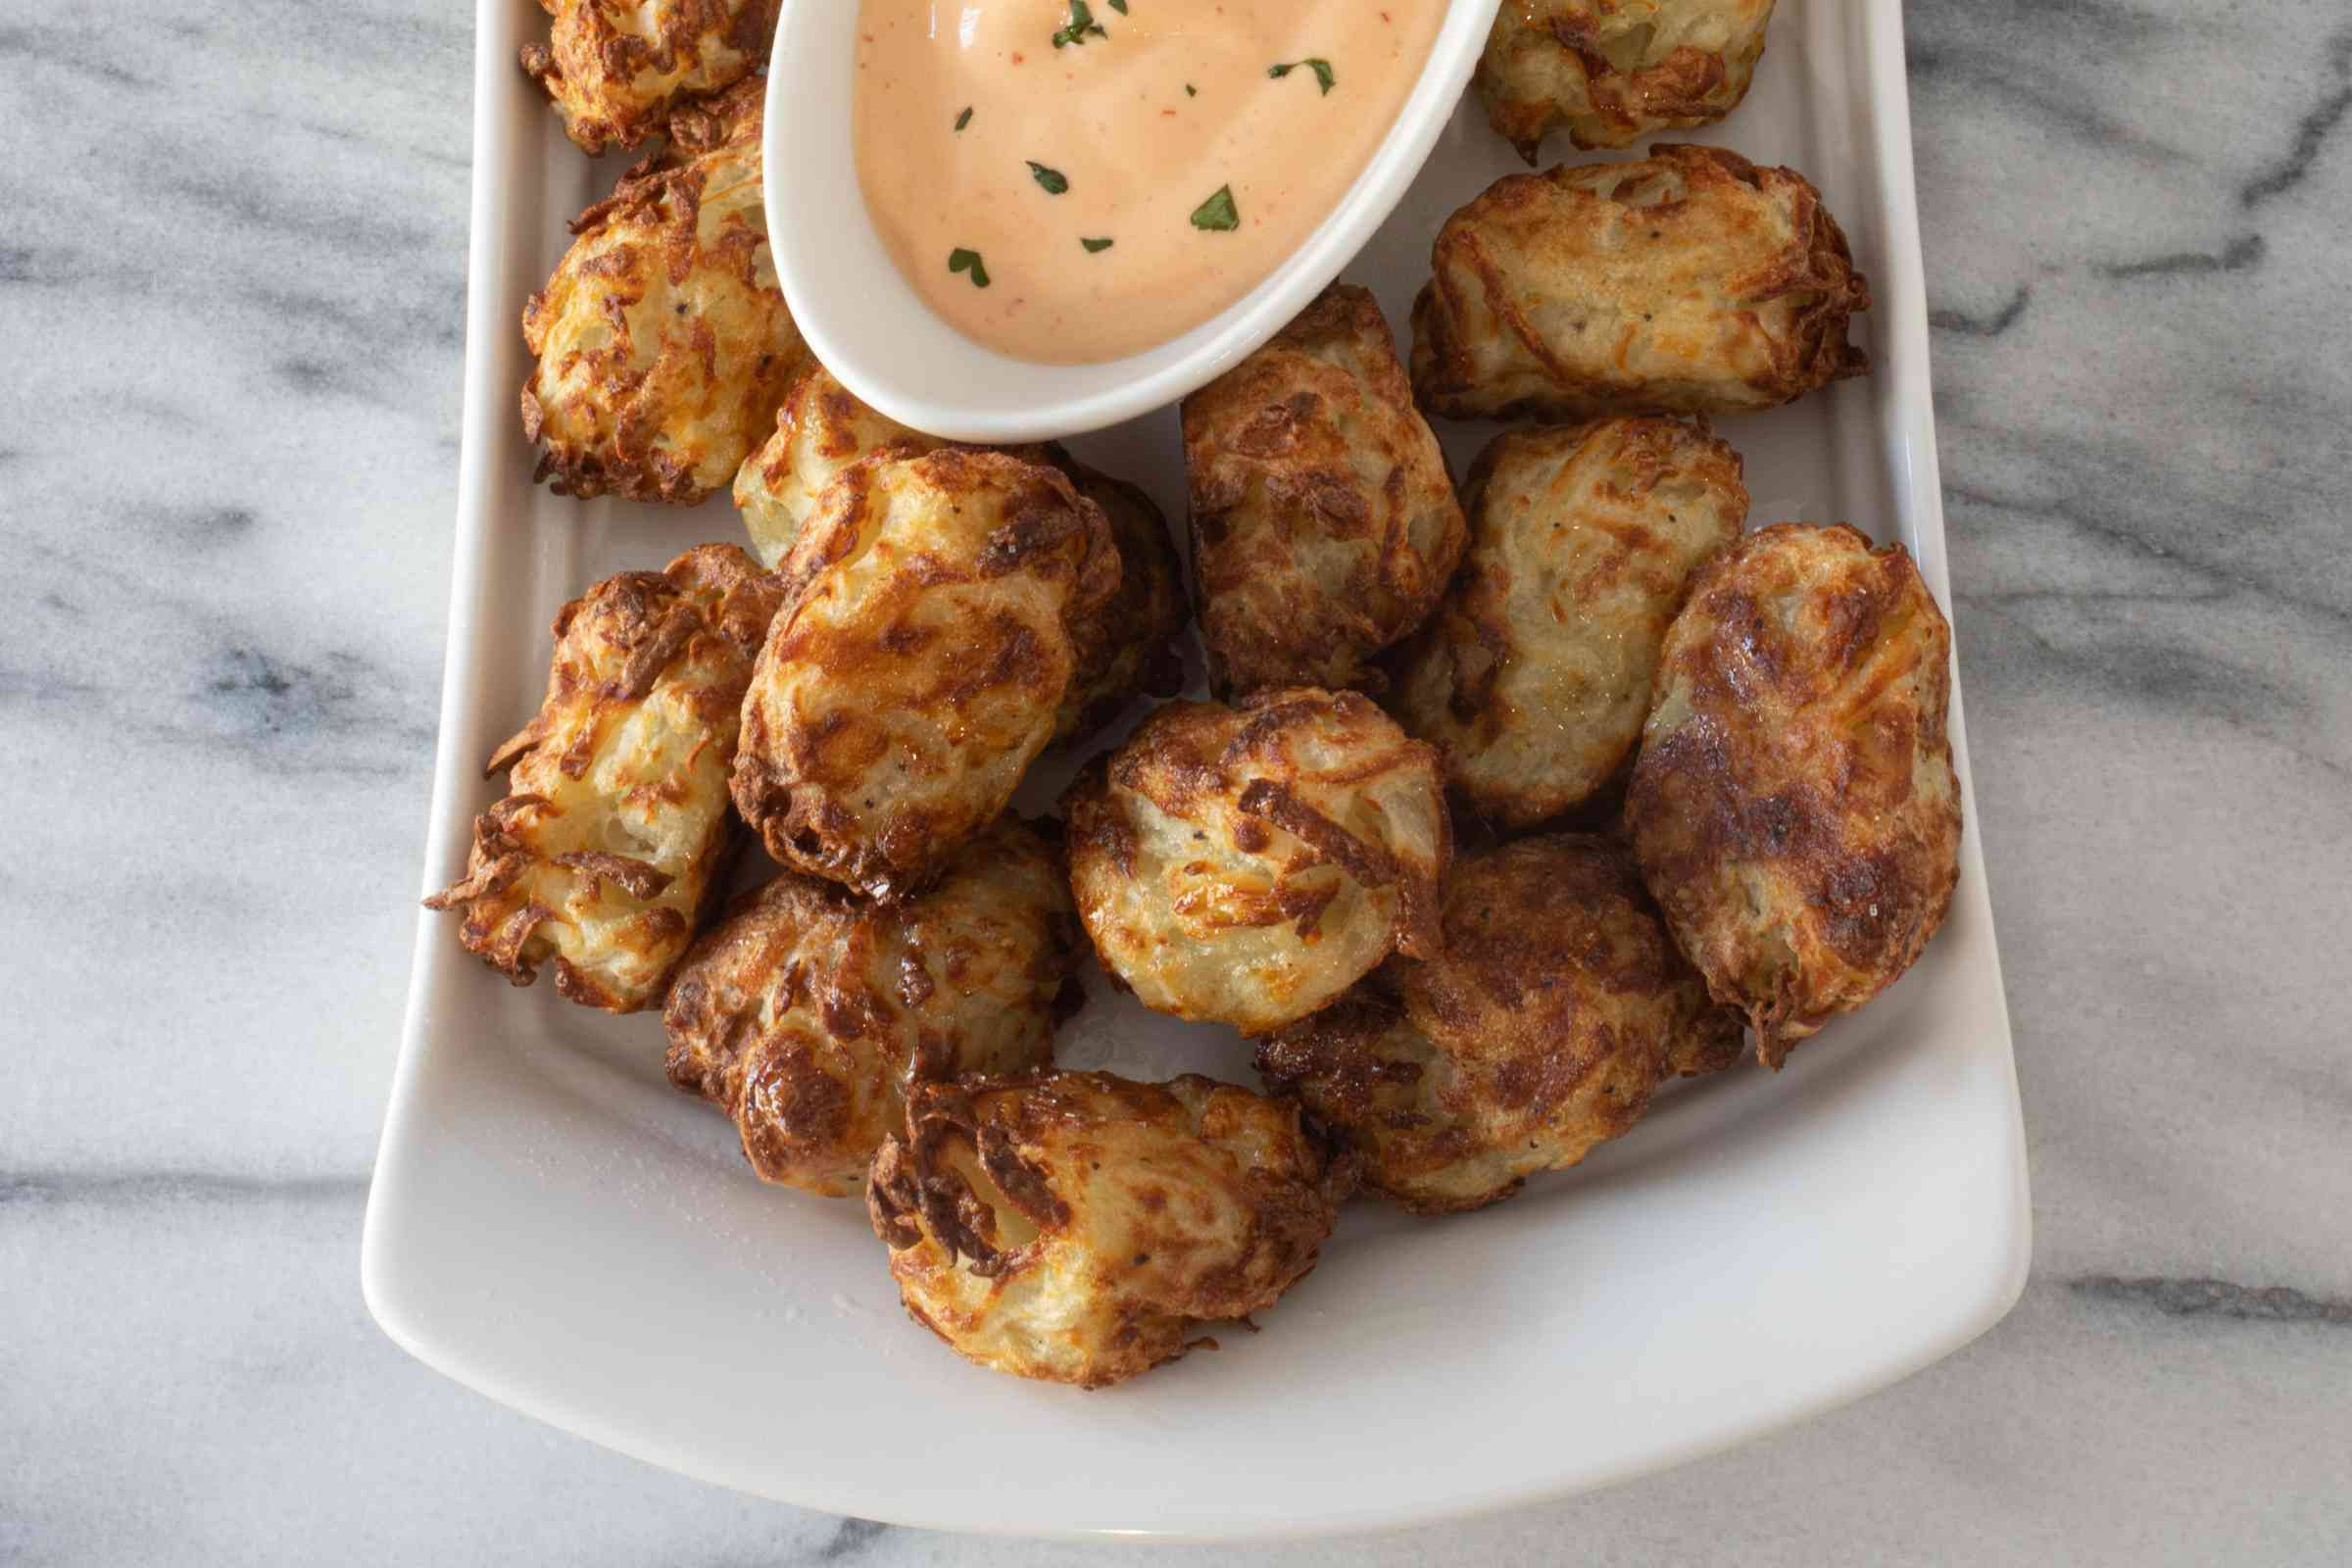 Finished tater tots with the spicy dip.